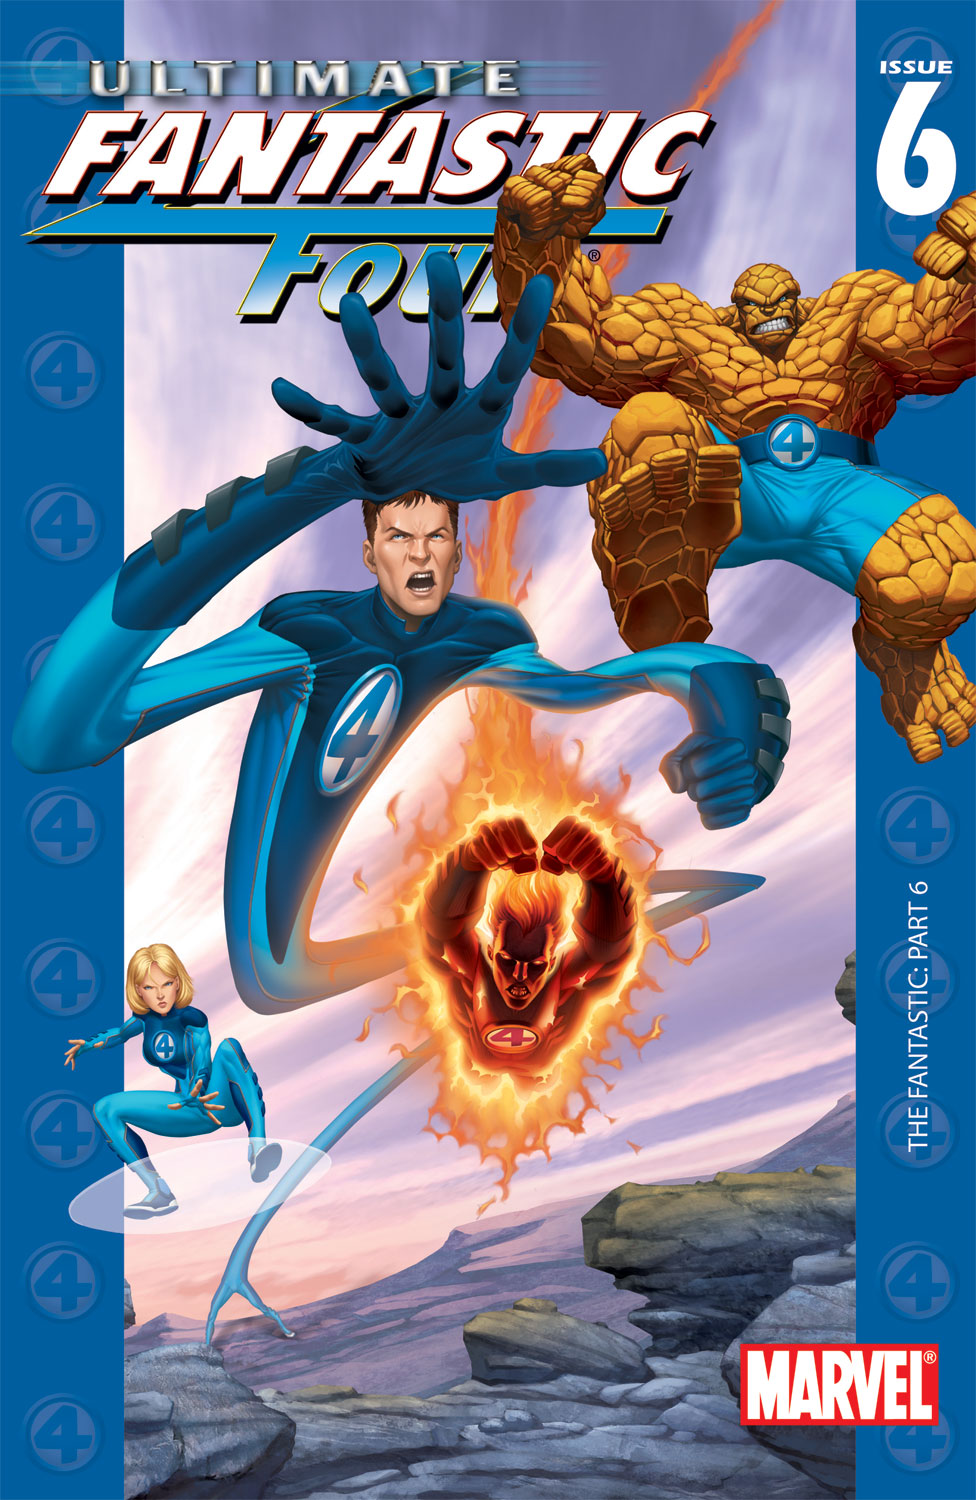 Read online Ultimate Fantastic Four (2004) comic -  Issue #6 - 1